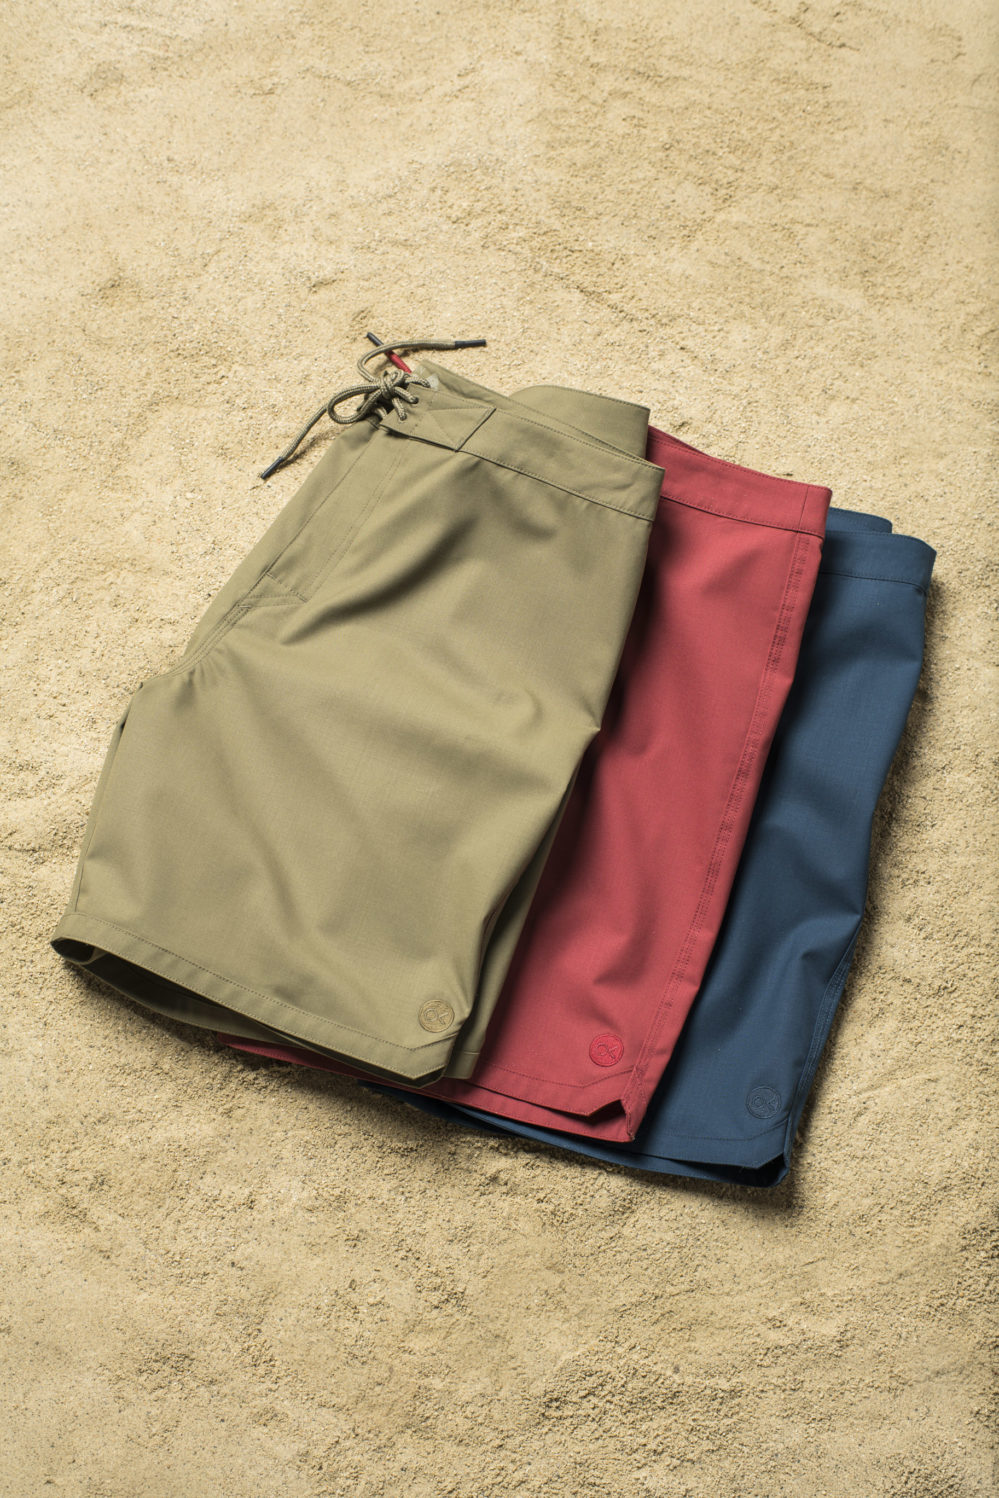 A world-first, introducing the 100% Merino wool boardshort, certified by The Woolmark Company